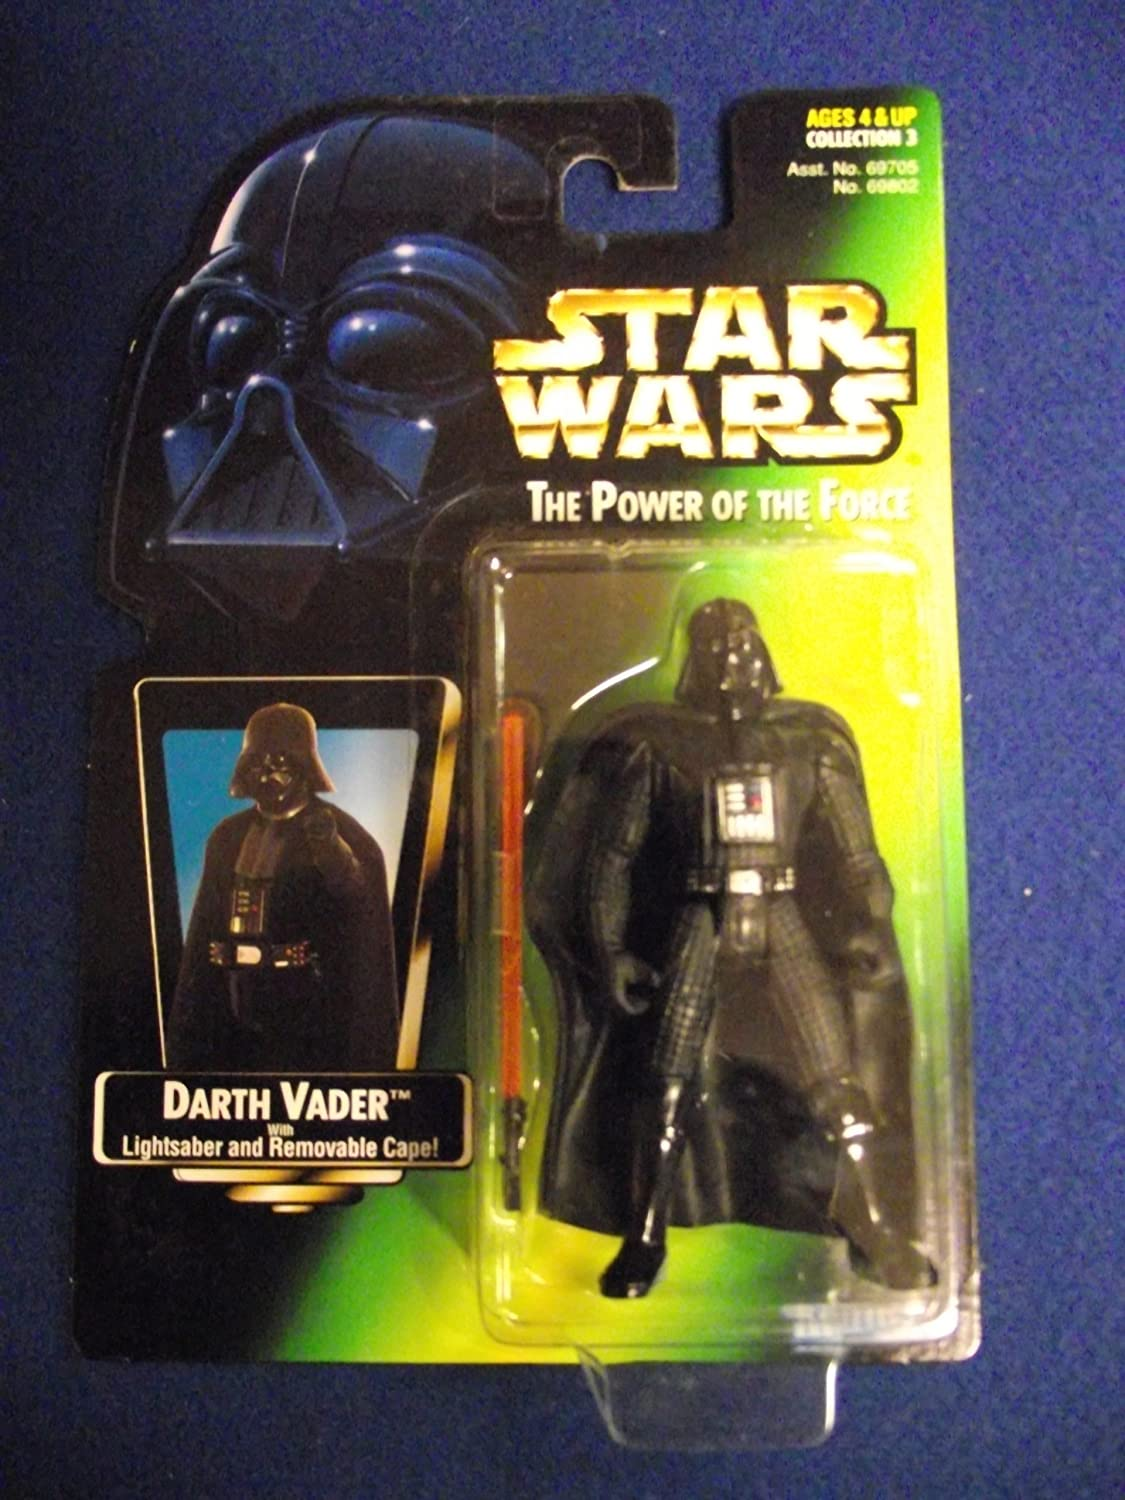 STAR WARS US POWER OF THE FORCE 2 GREEN CARD DARTH VADER WITH LIGHTSABER AND REMOVABLE CAPE